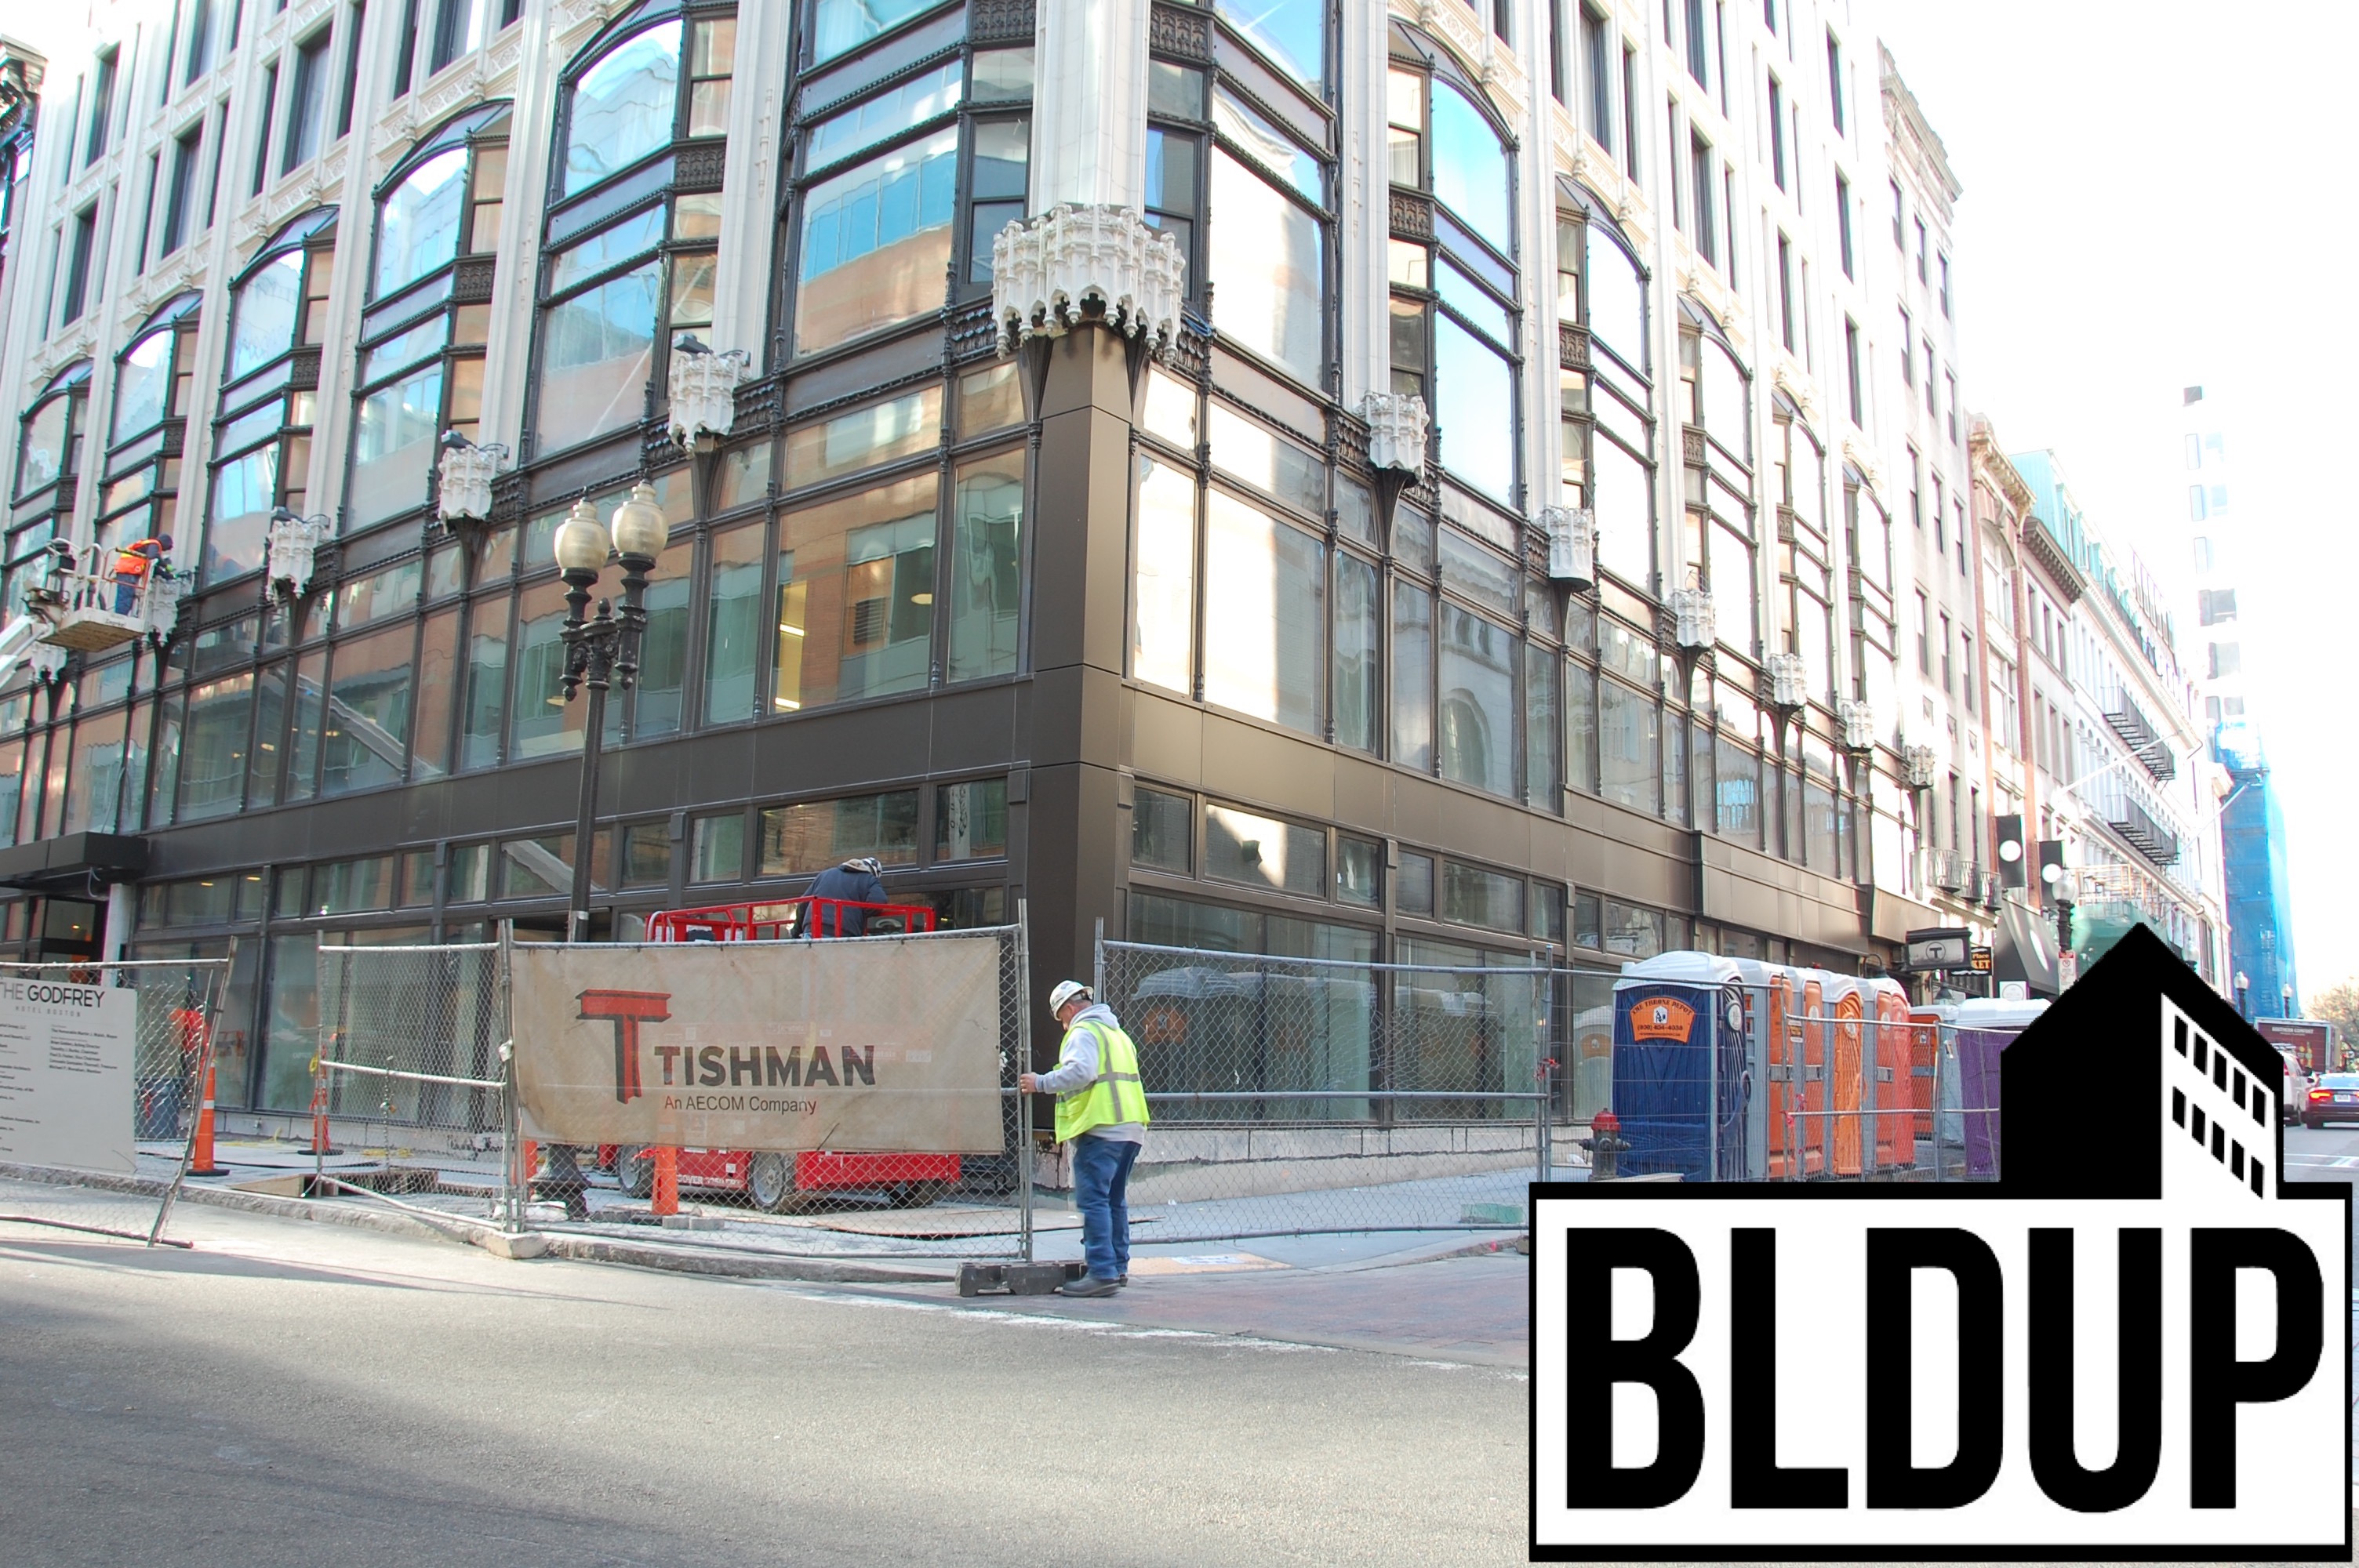 Godfrey hotel downtown crossing urban boston oxford capital tishman construction 19